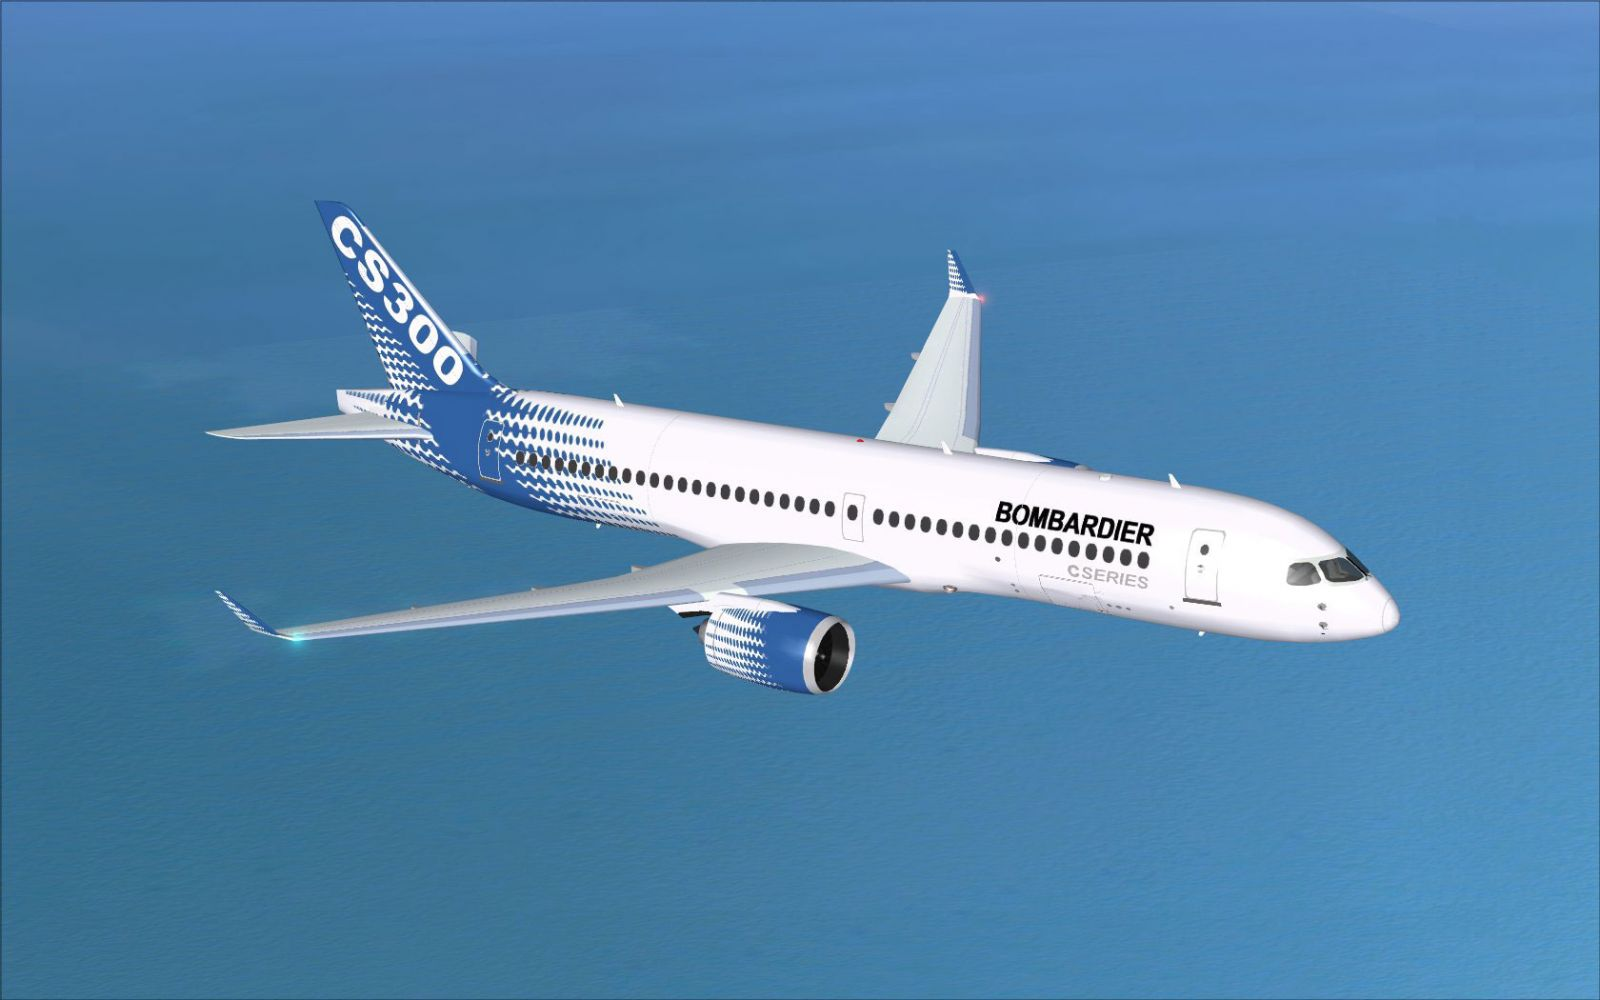 bombardier cseries Airbus and bombardier plan to bring assembly of the canadian aircraft producer's c series passenger jets to airbus' alabama facility.